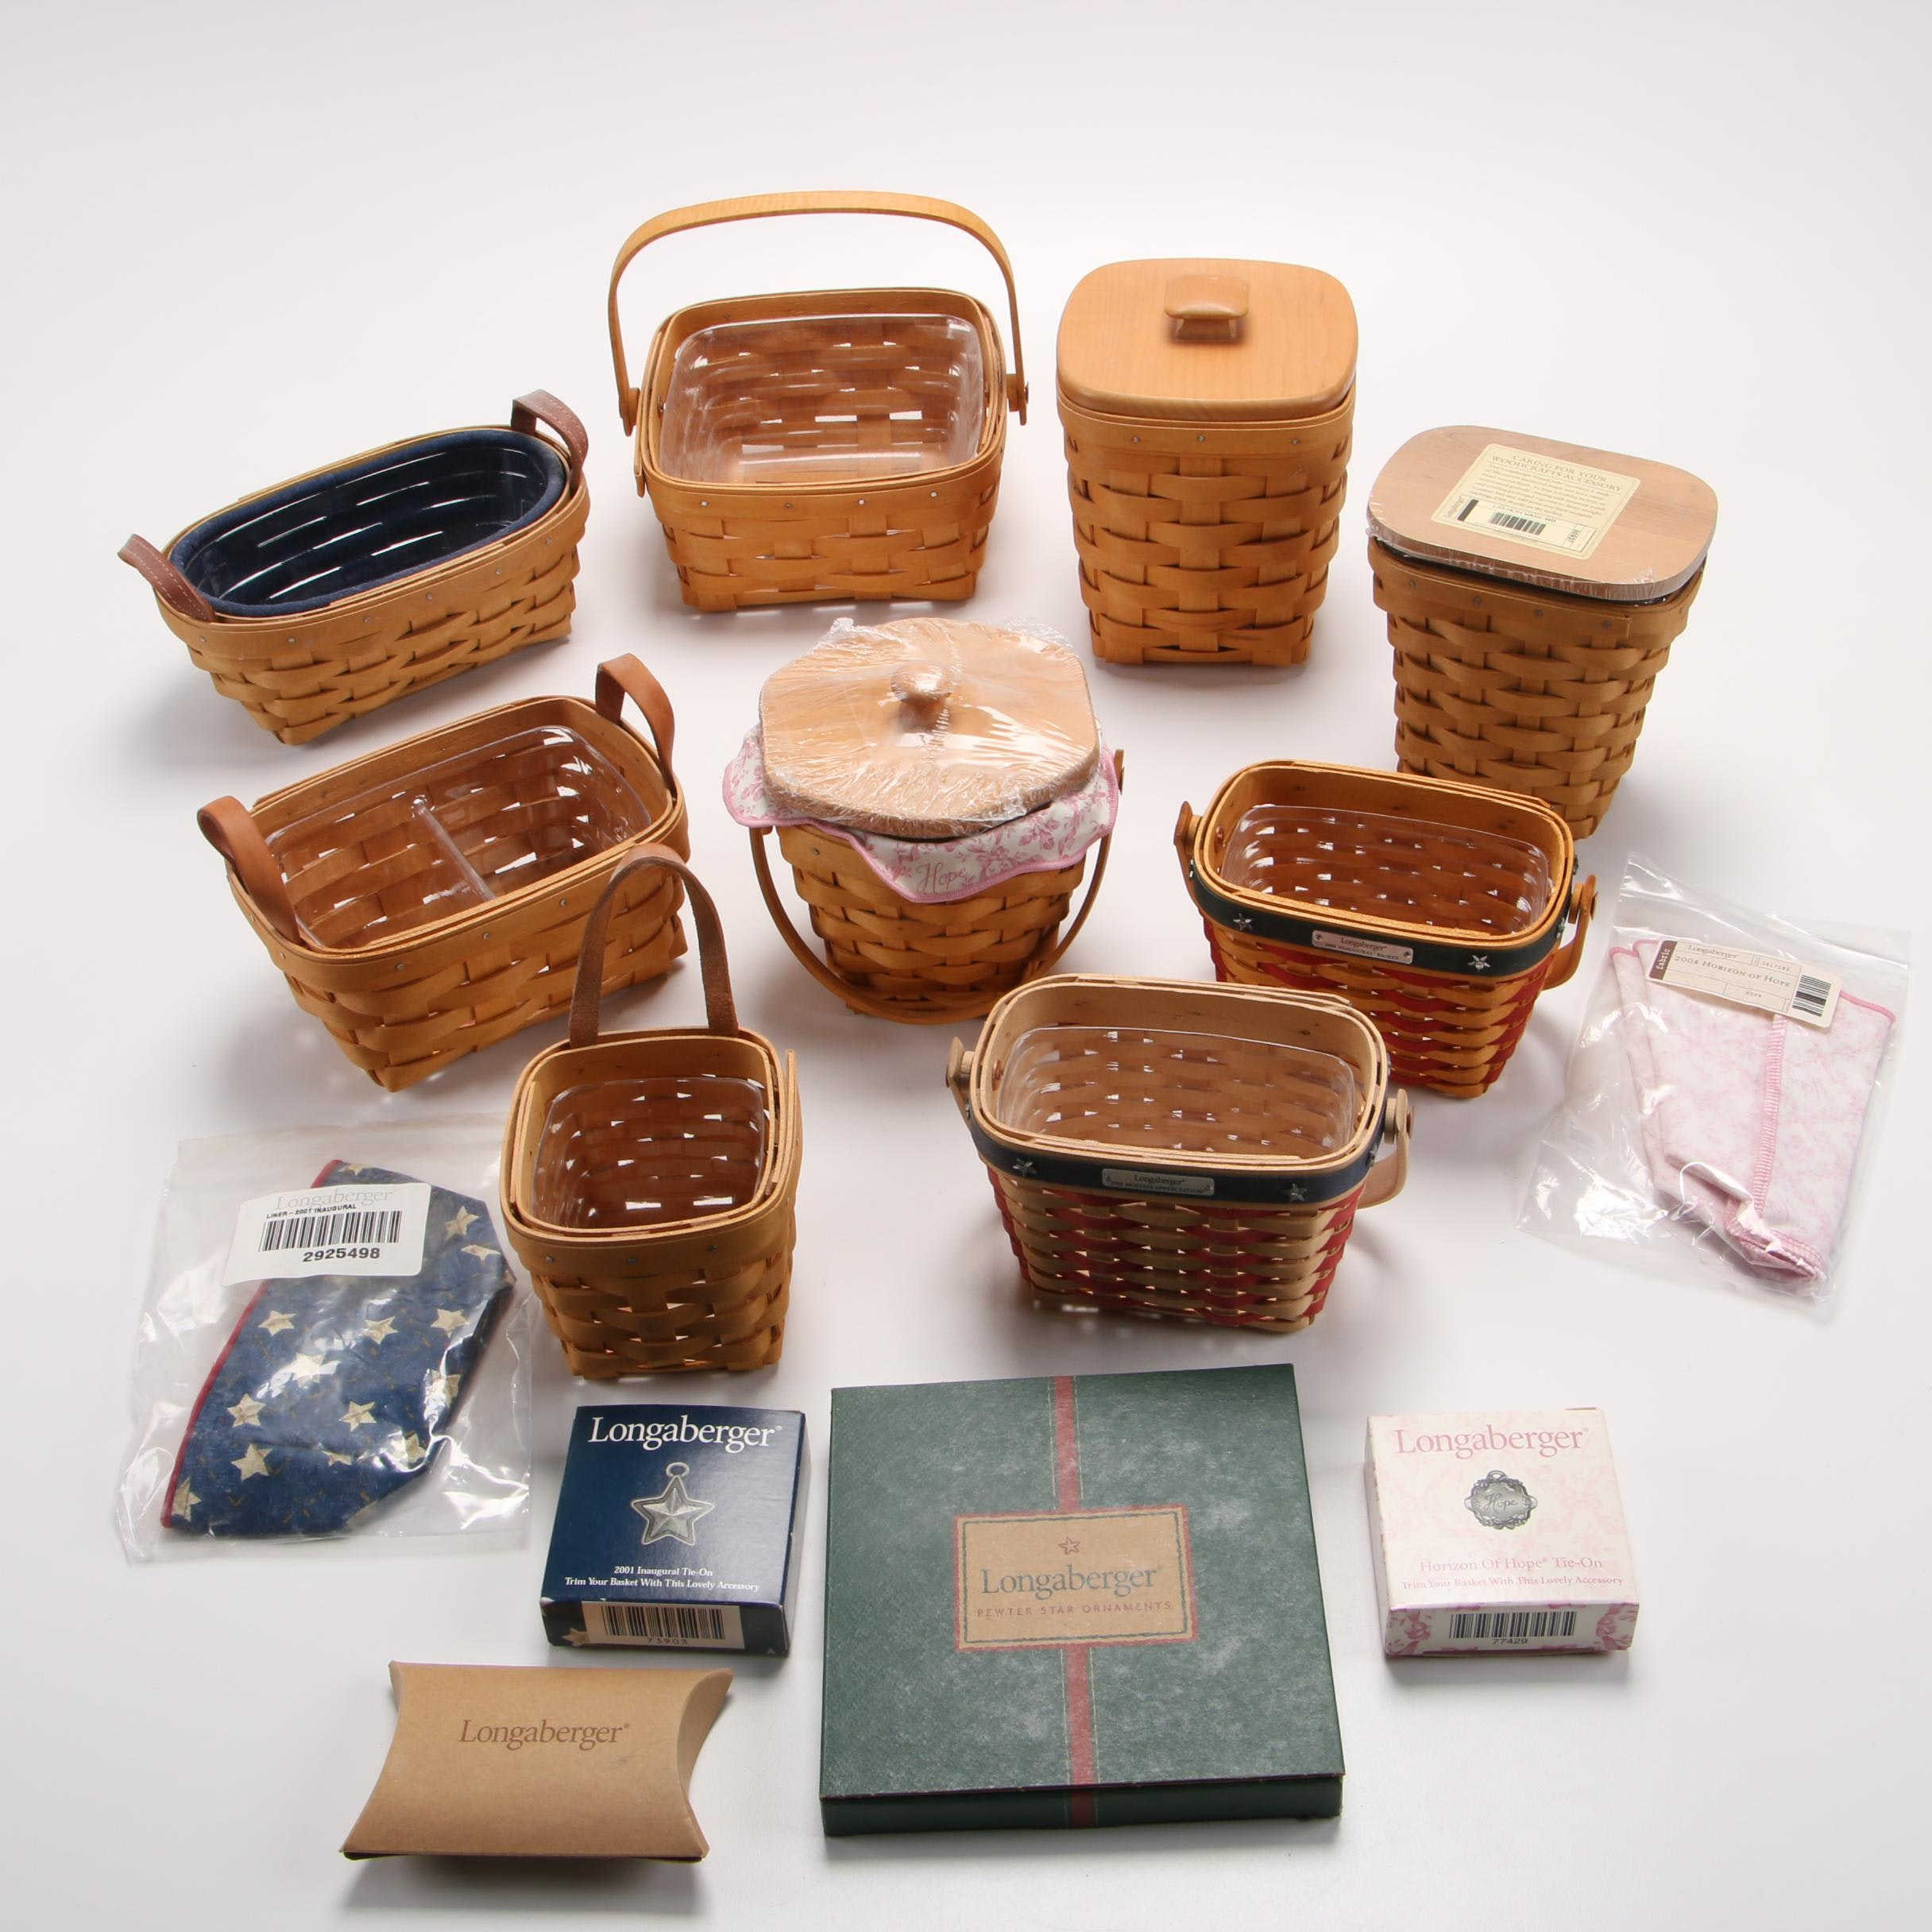 Longaberger Baskets and Accessories